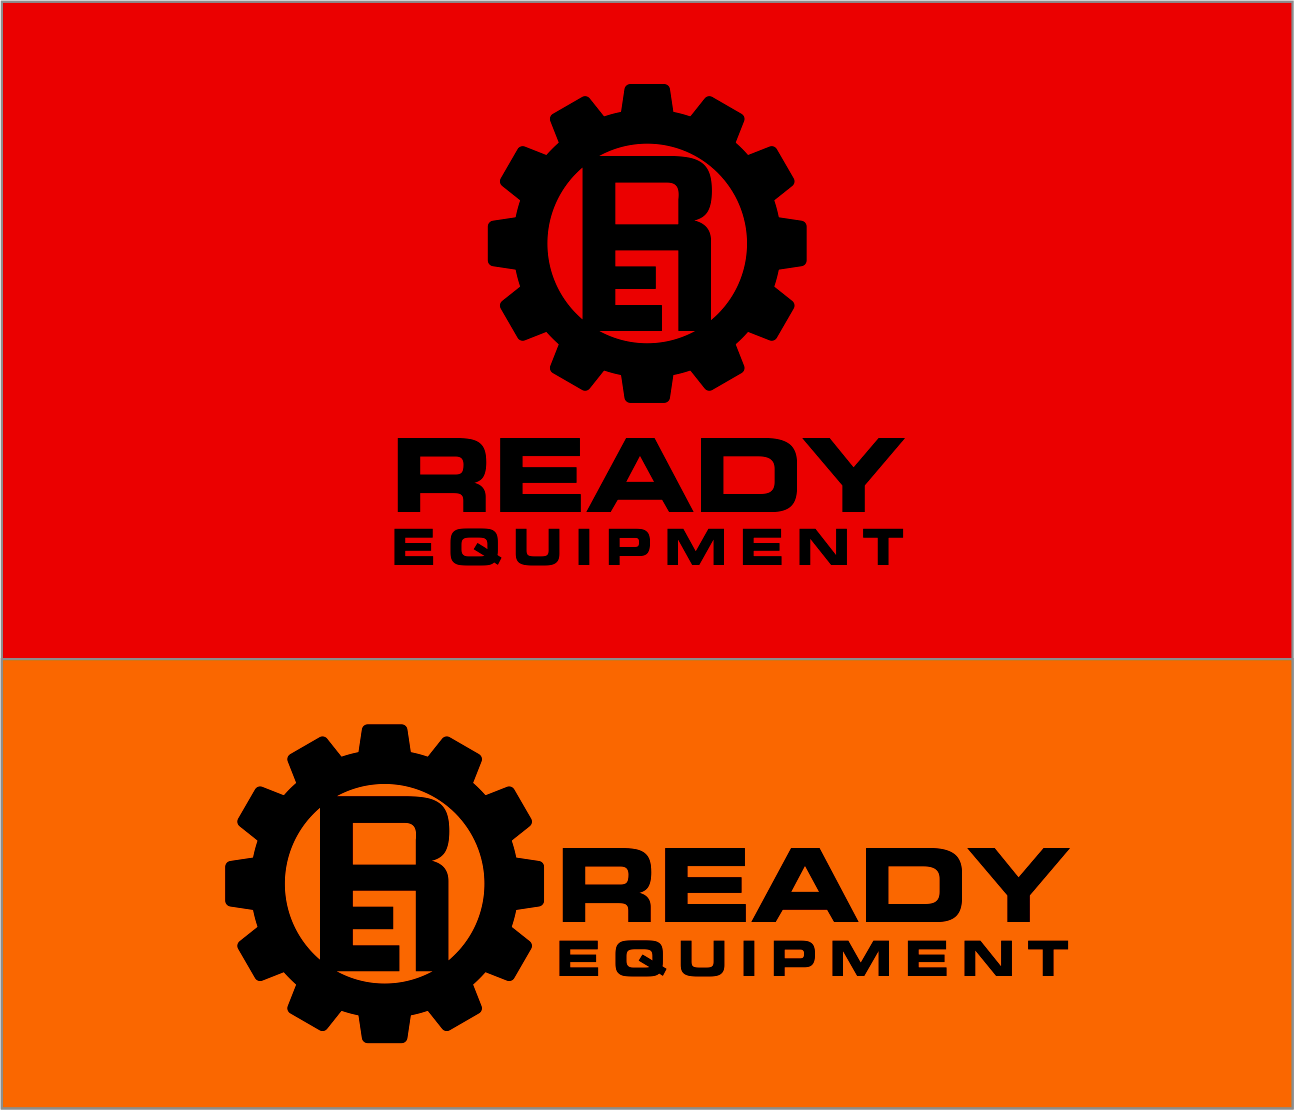 Logo Design by Armada Jamaluddin - Entry No. 180 in the Logo Design Contest Ready Equipment  Logo Design.